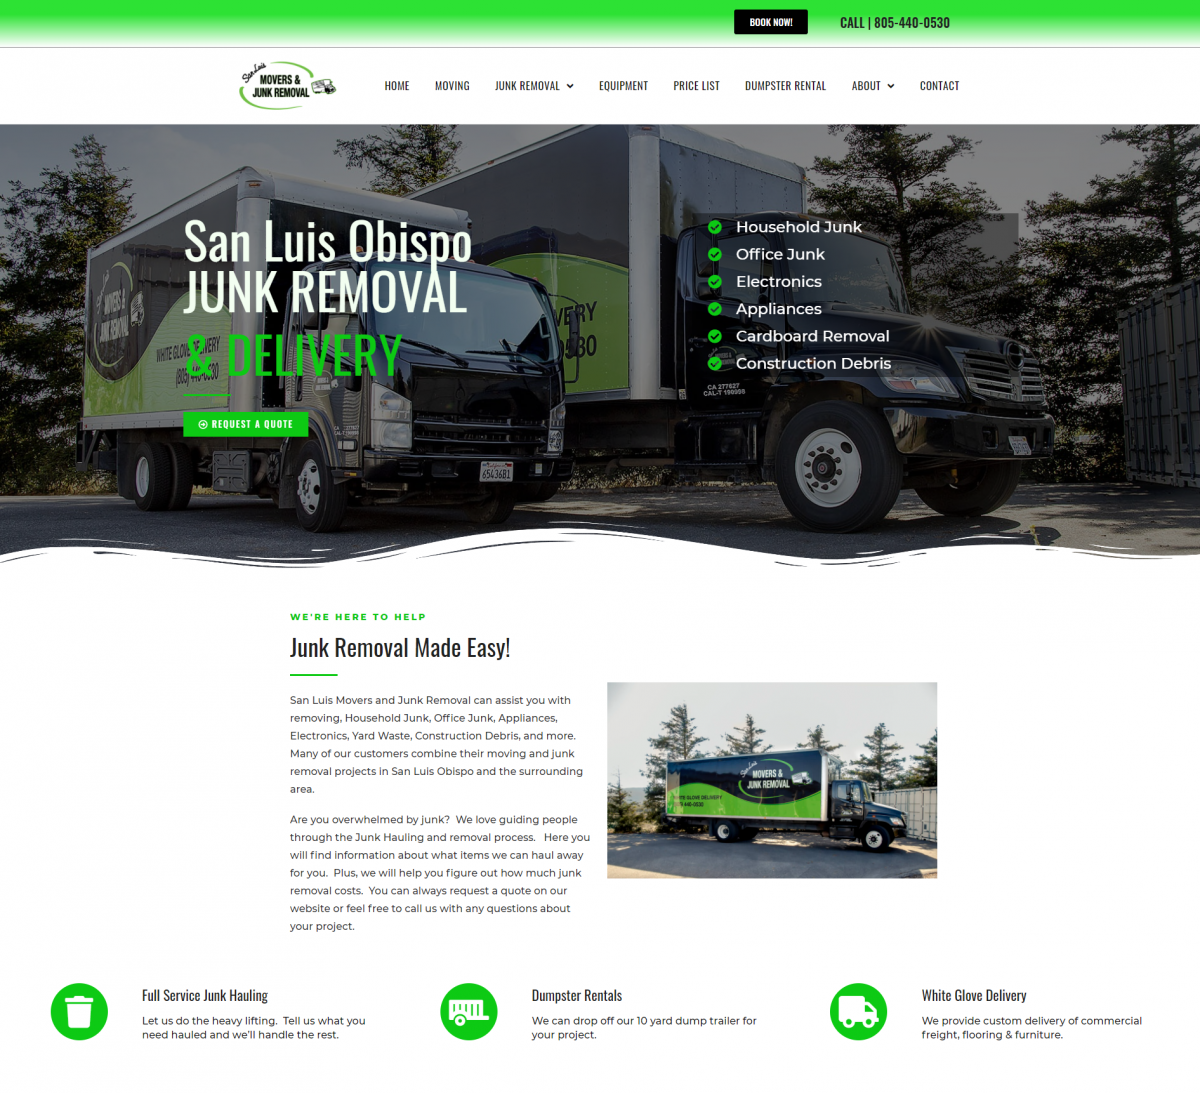 San Luis Movers & Junk Removal Launches A New & Better Website